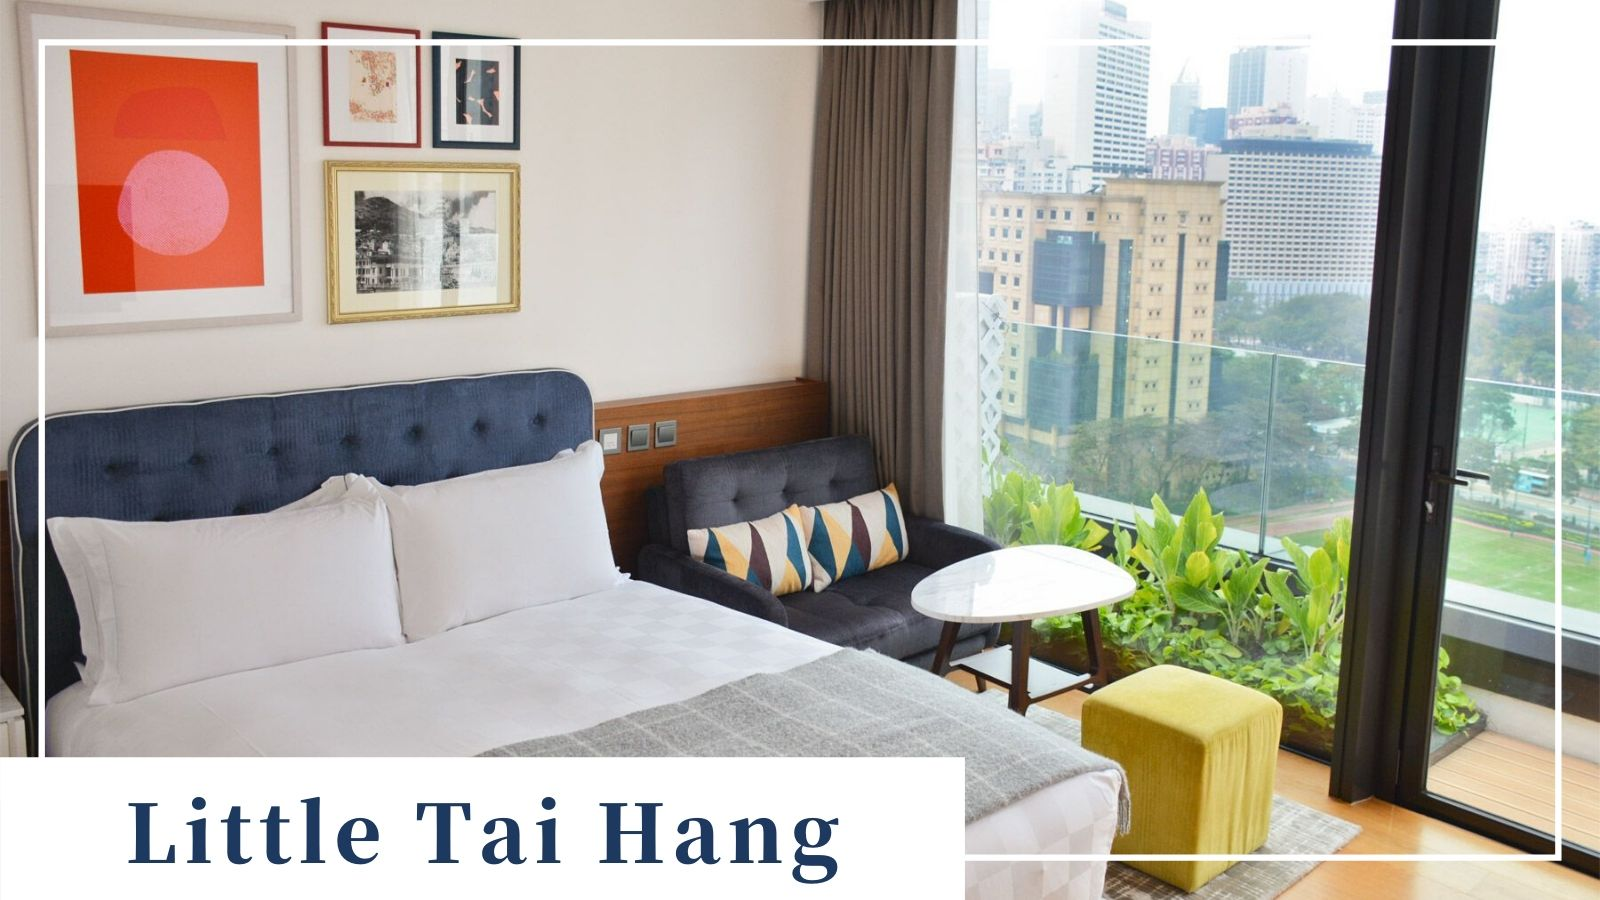 Little Tai Hang